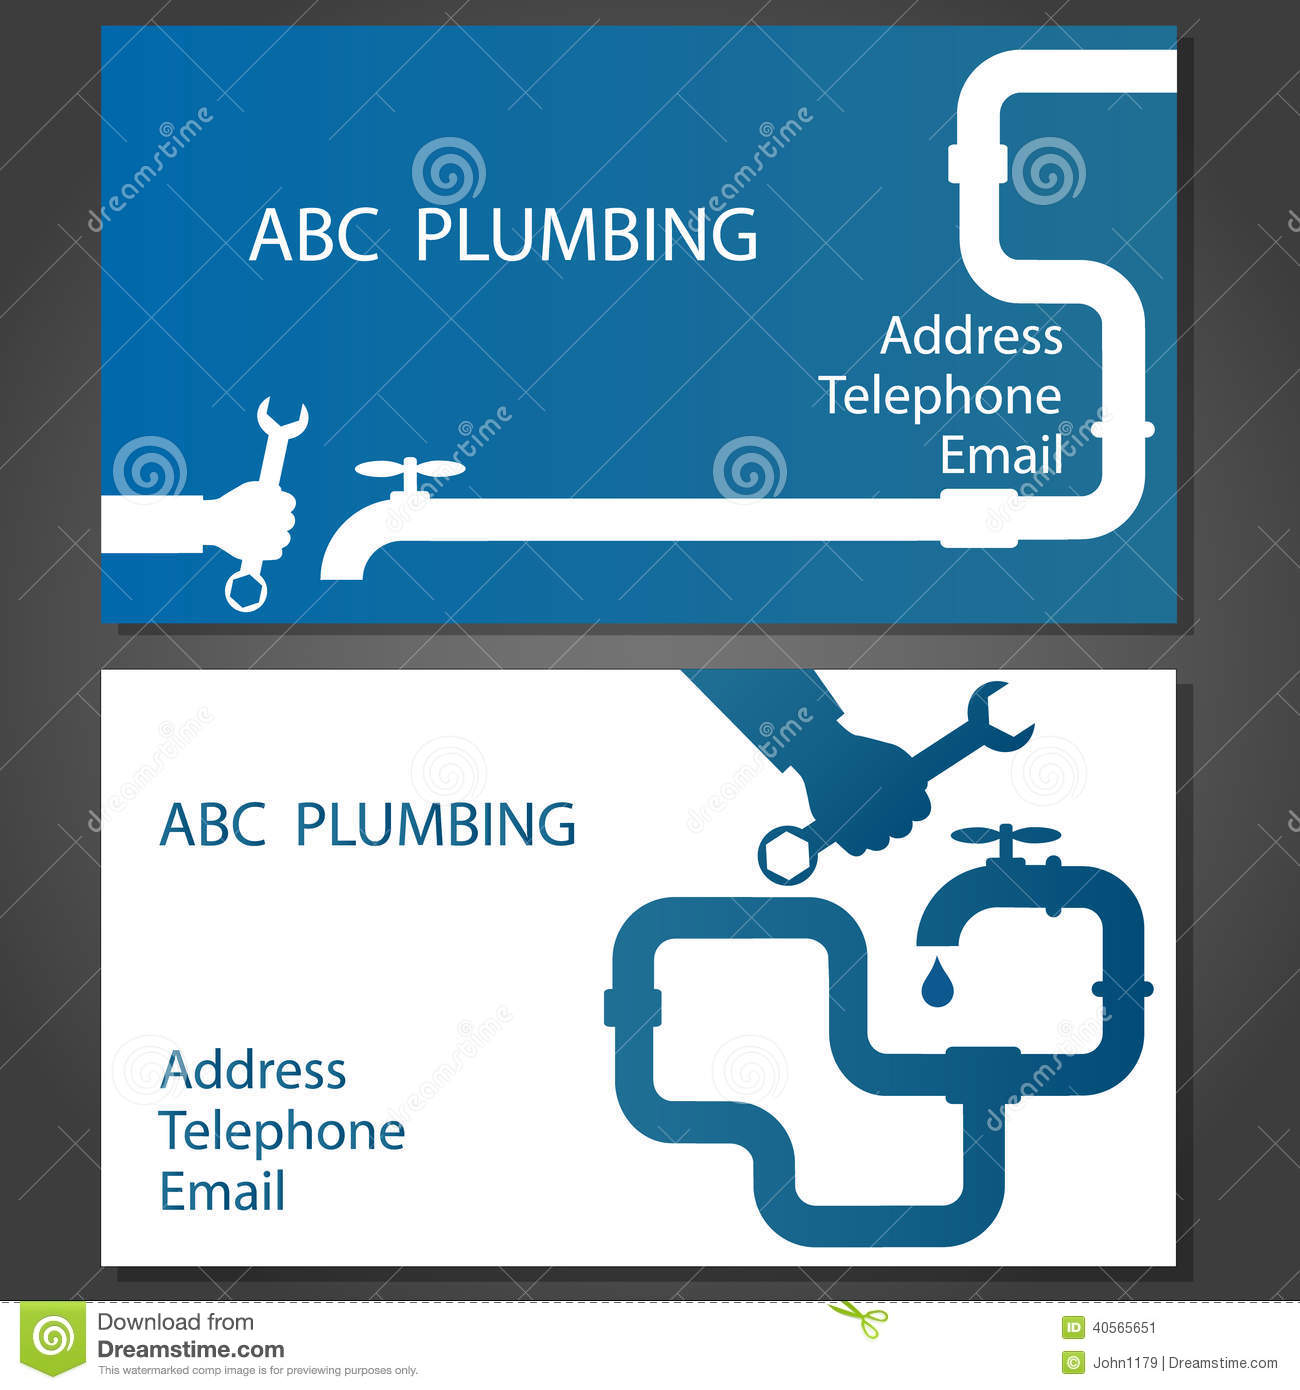 business-card-repair-plumbing-to-vector-40565651.jpg